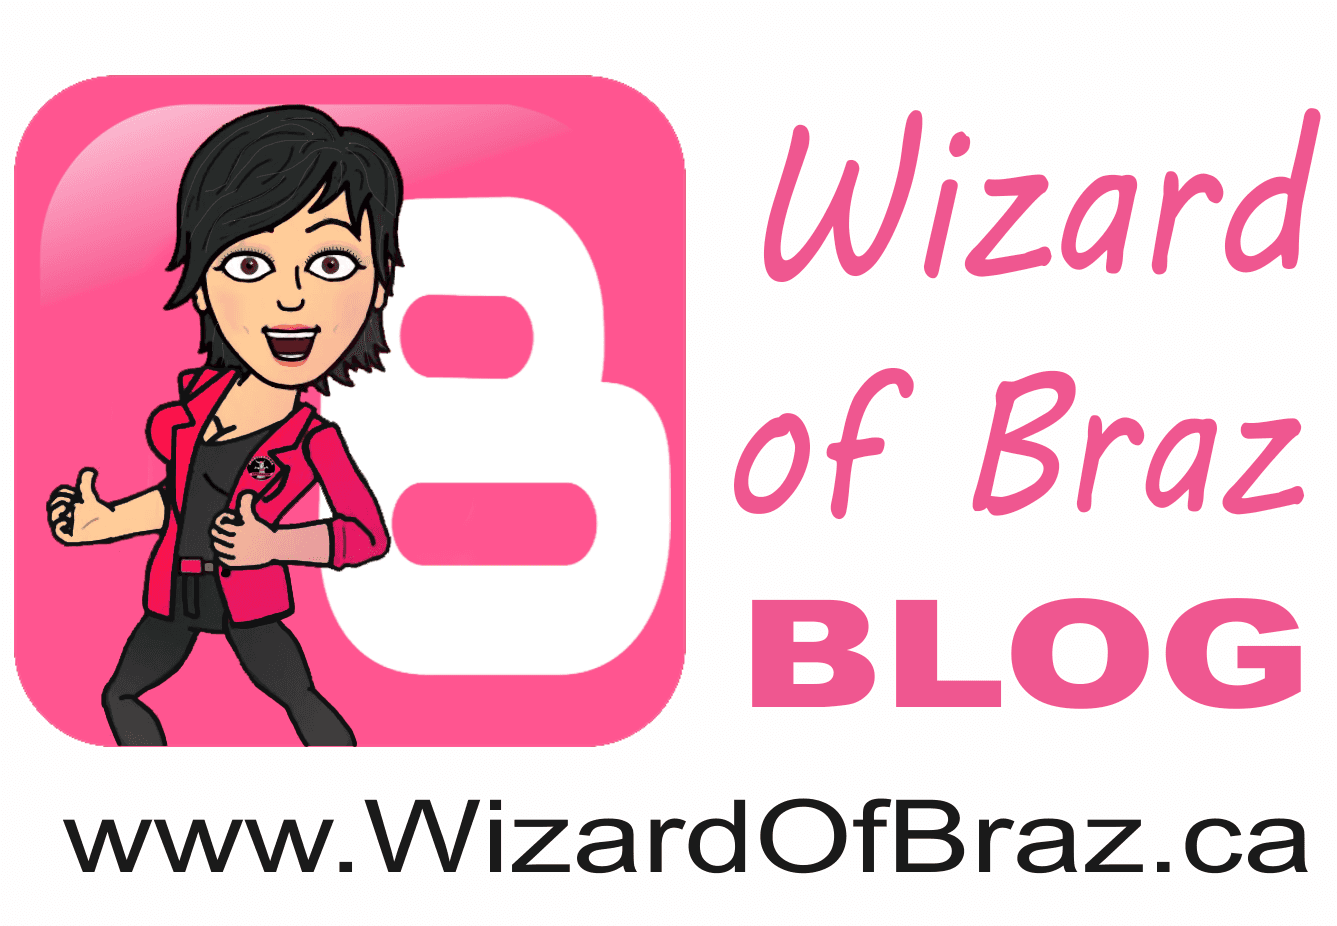 Wizard of Braz Blog